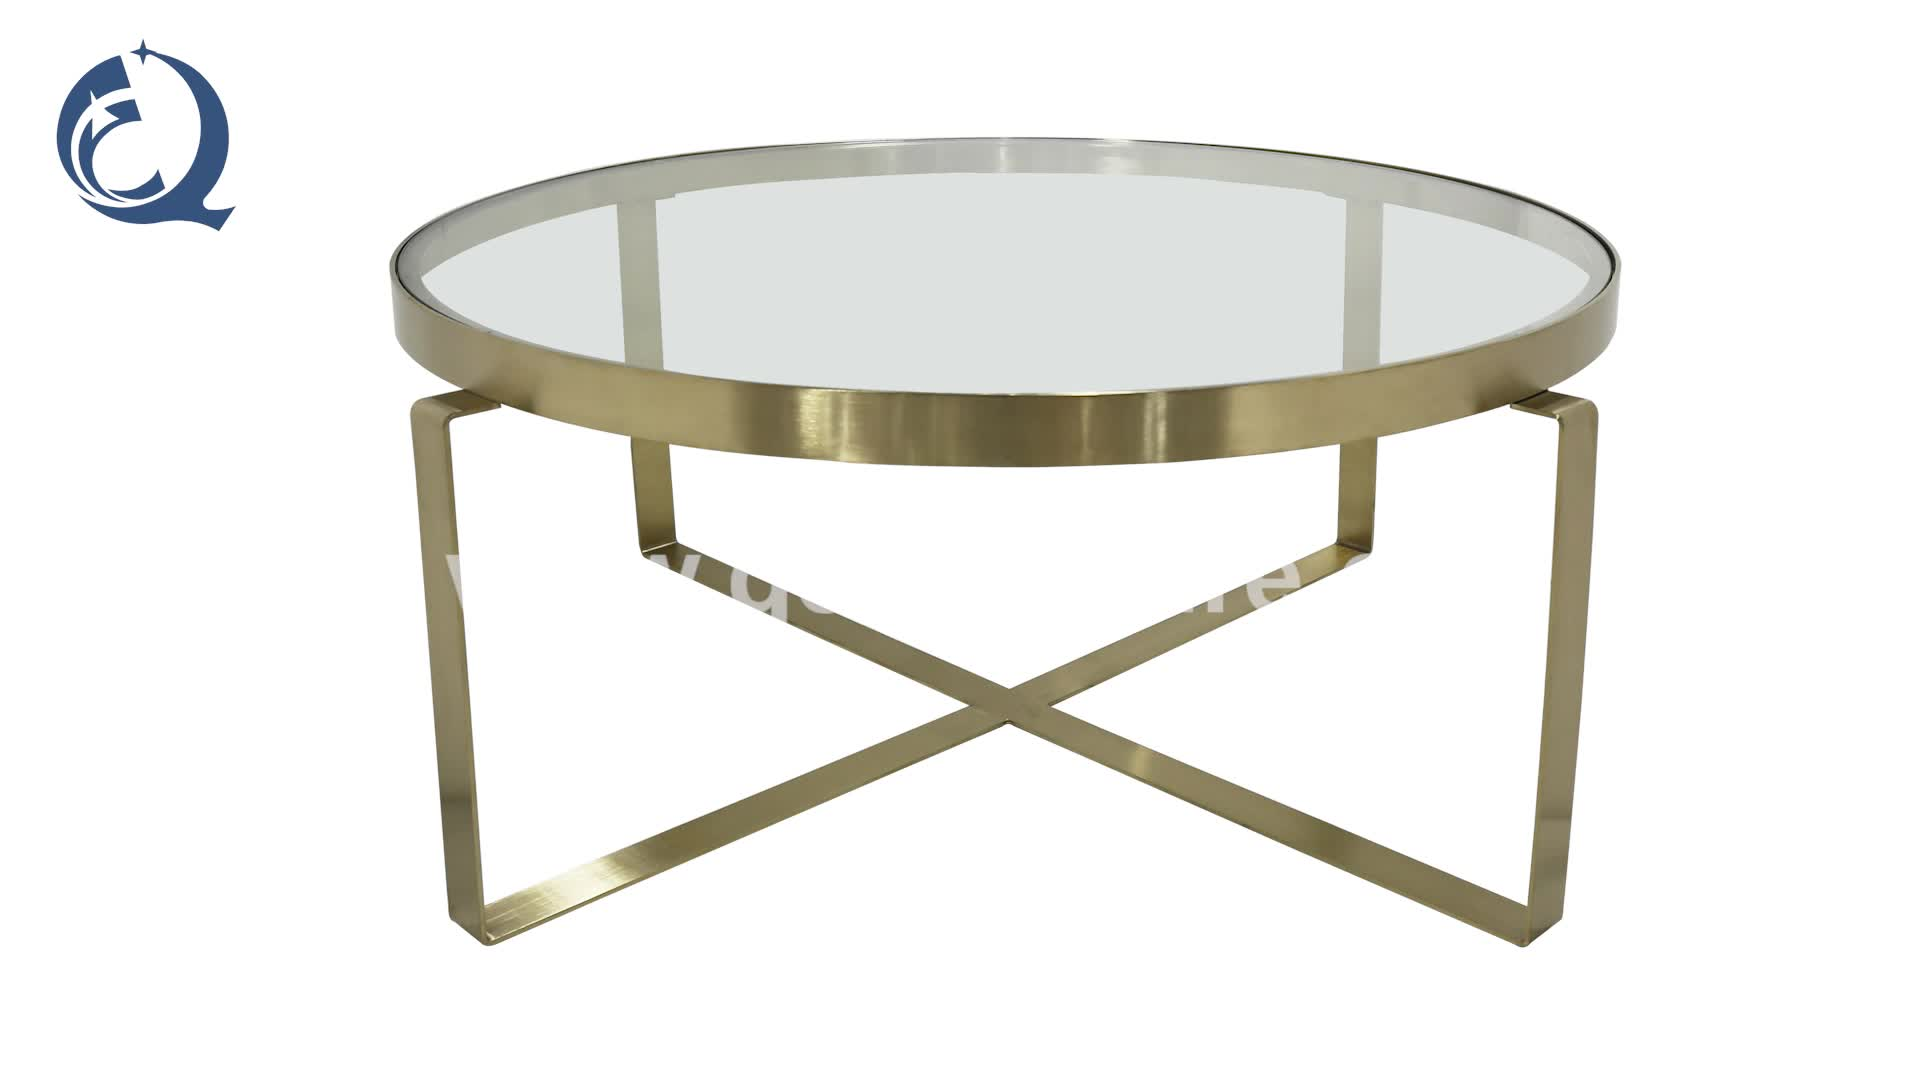 Nordic style round glass golden stainless steel coffee table